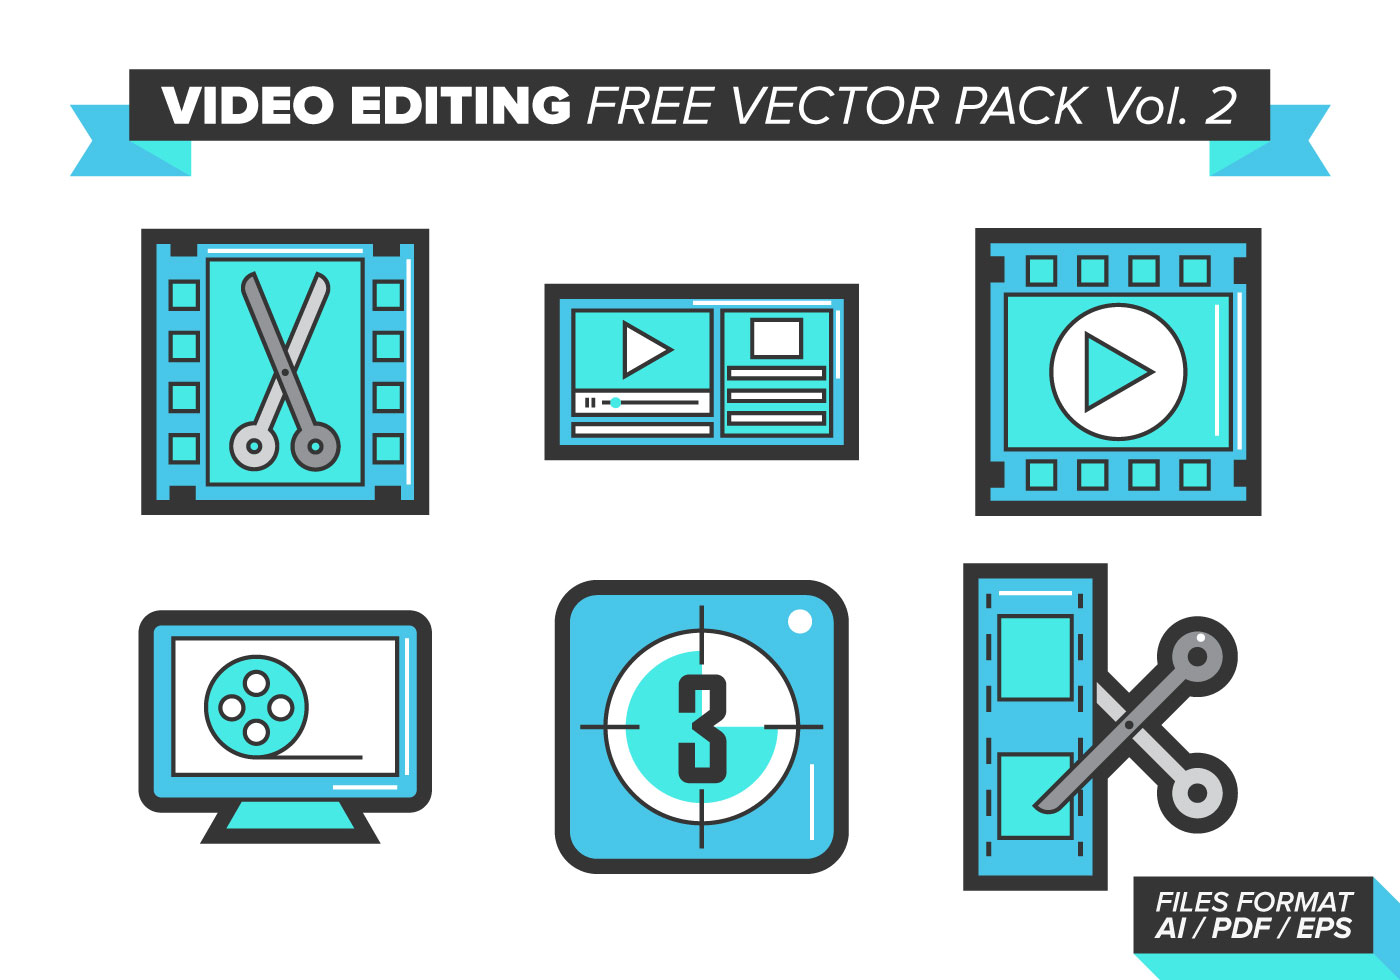 Video editing free vector pack vol 2 download free Online vector editor